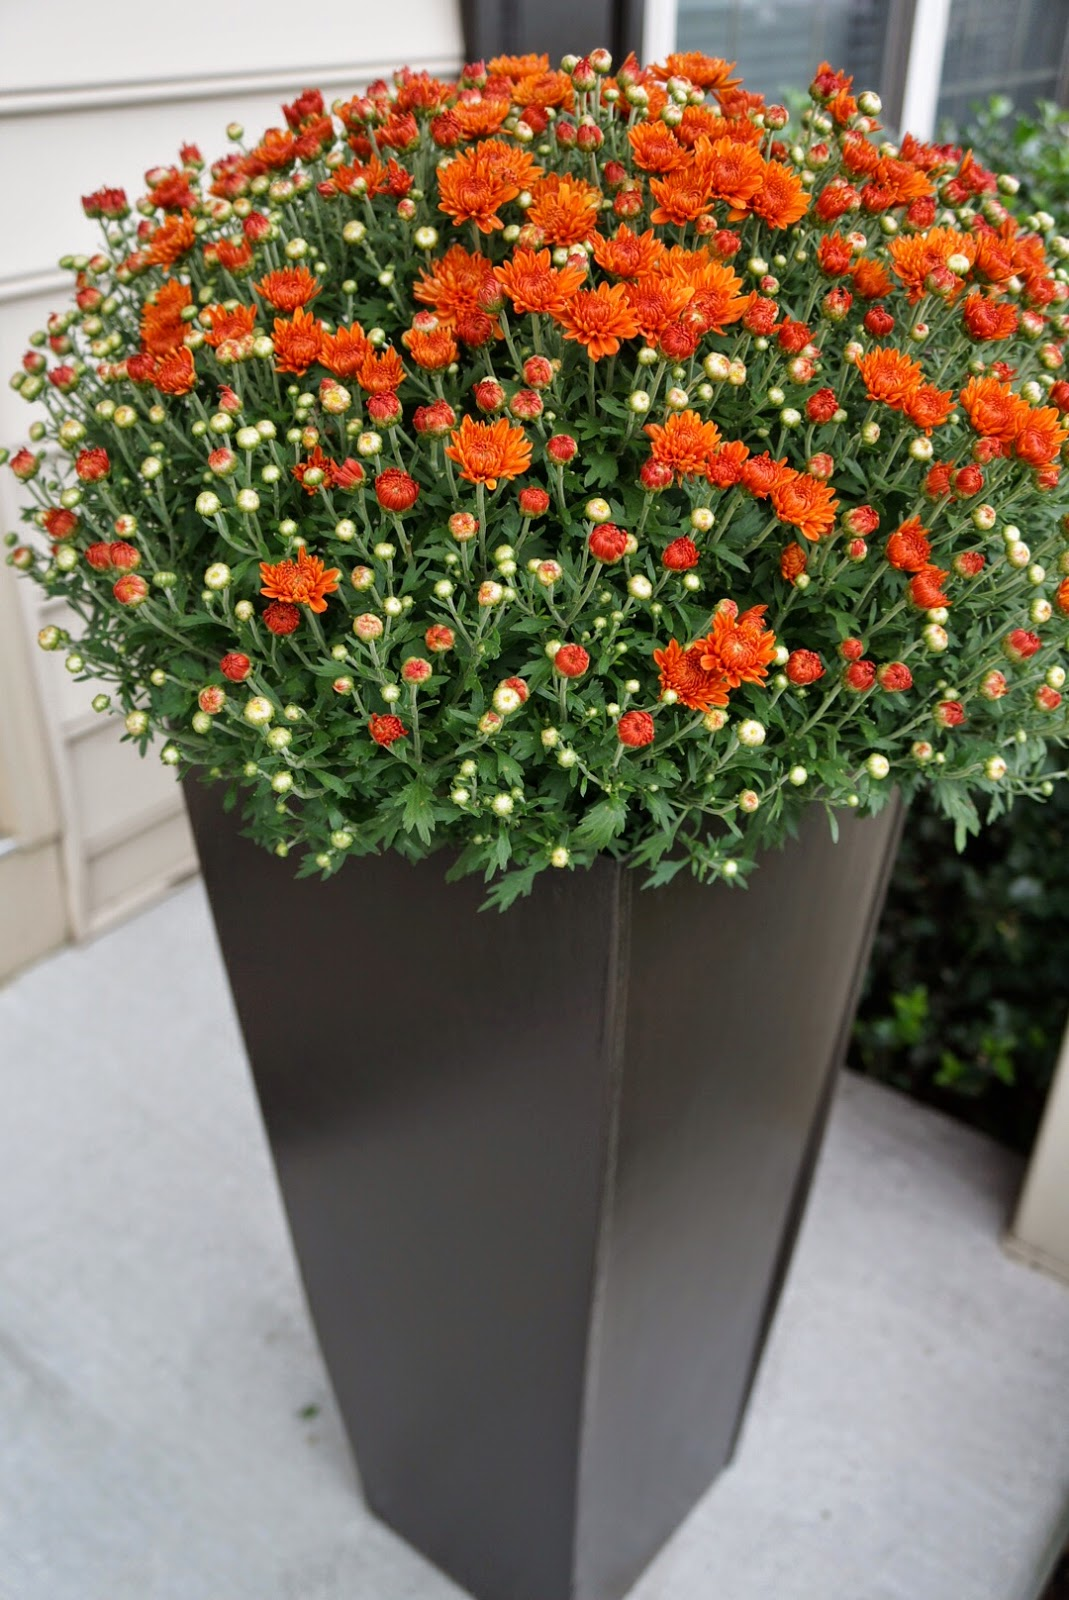 Flower Baskets Homebase : Tall planters shallow planter flower pot stand decor